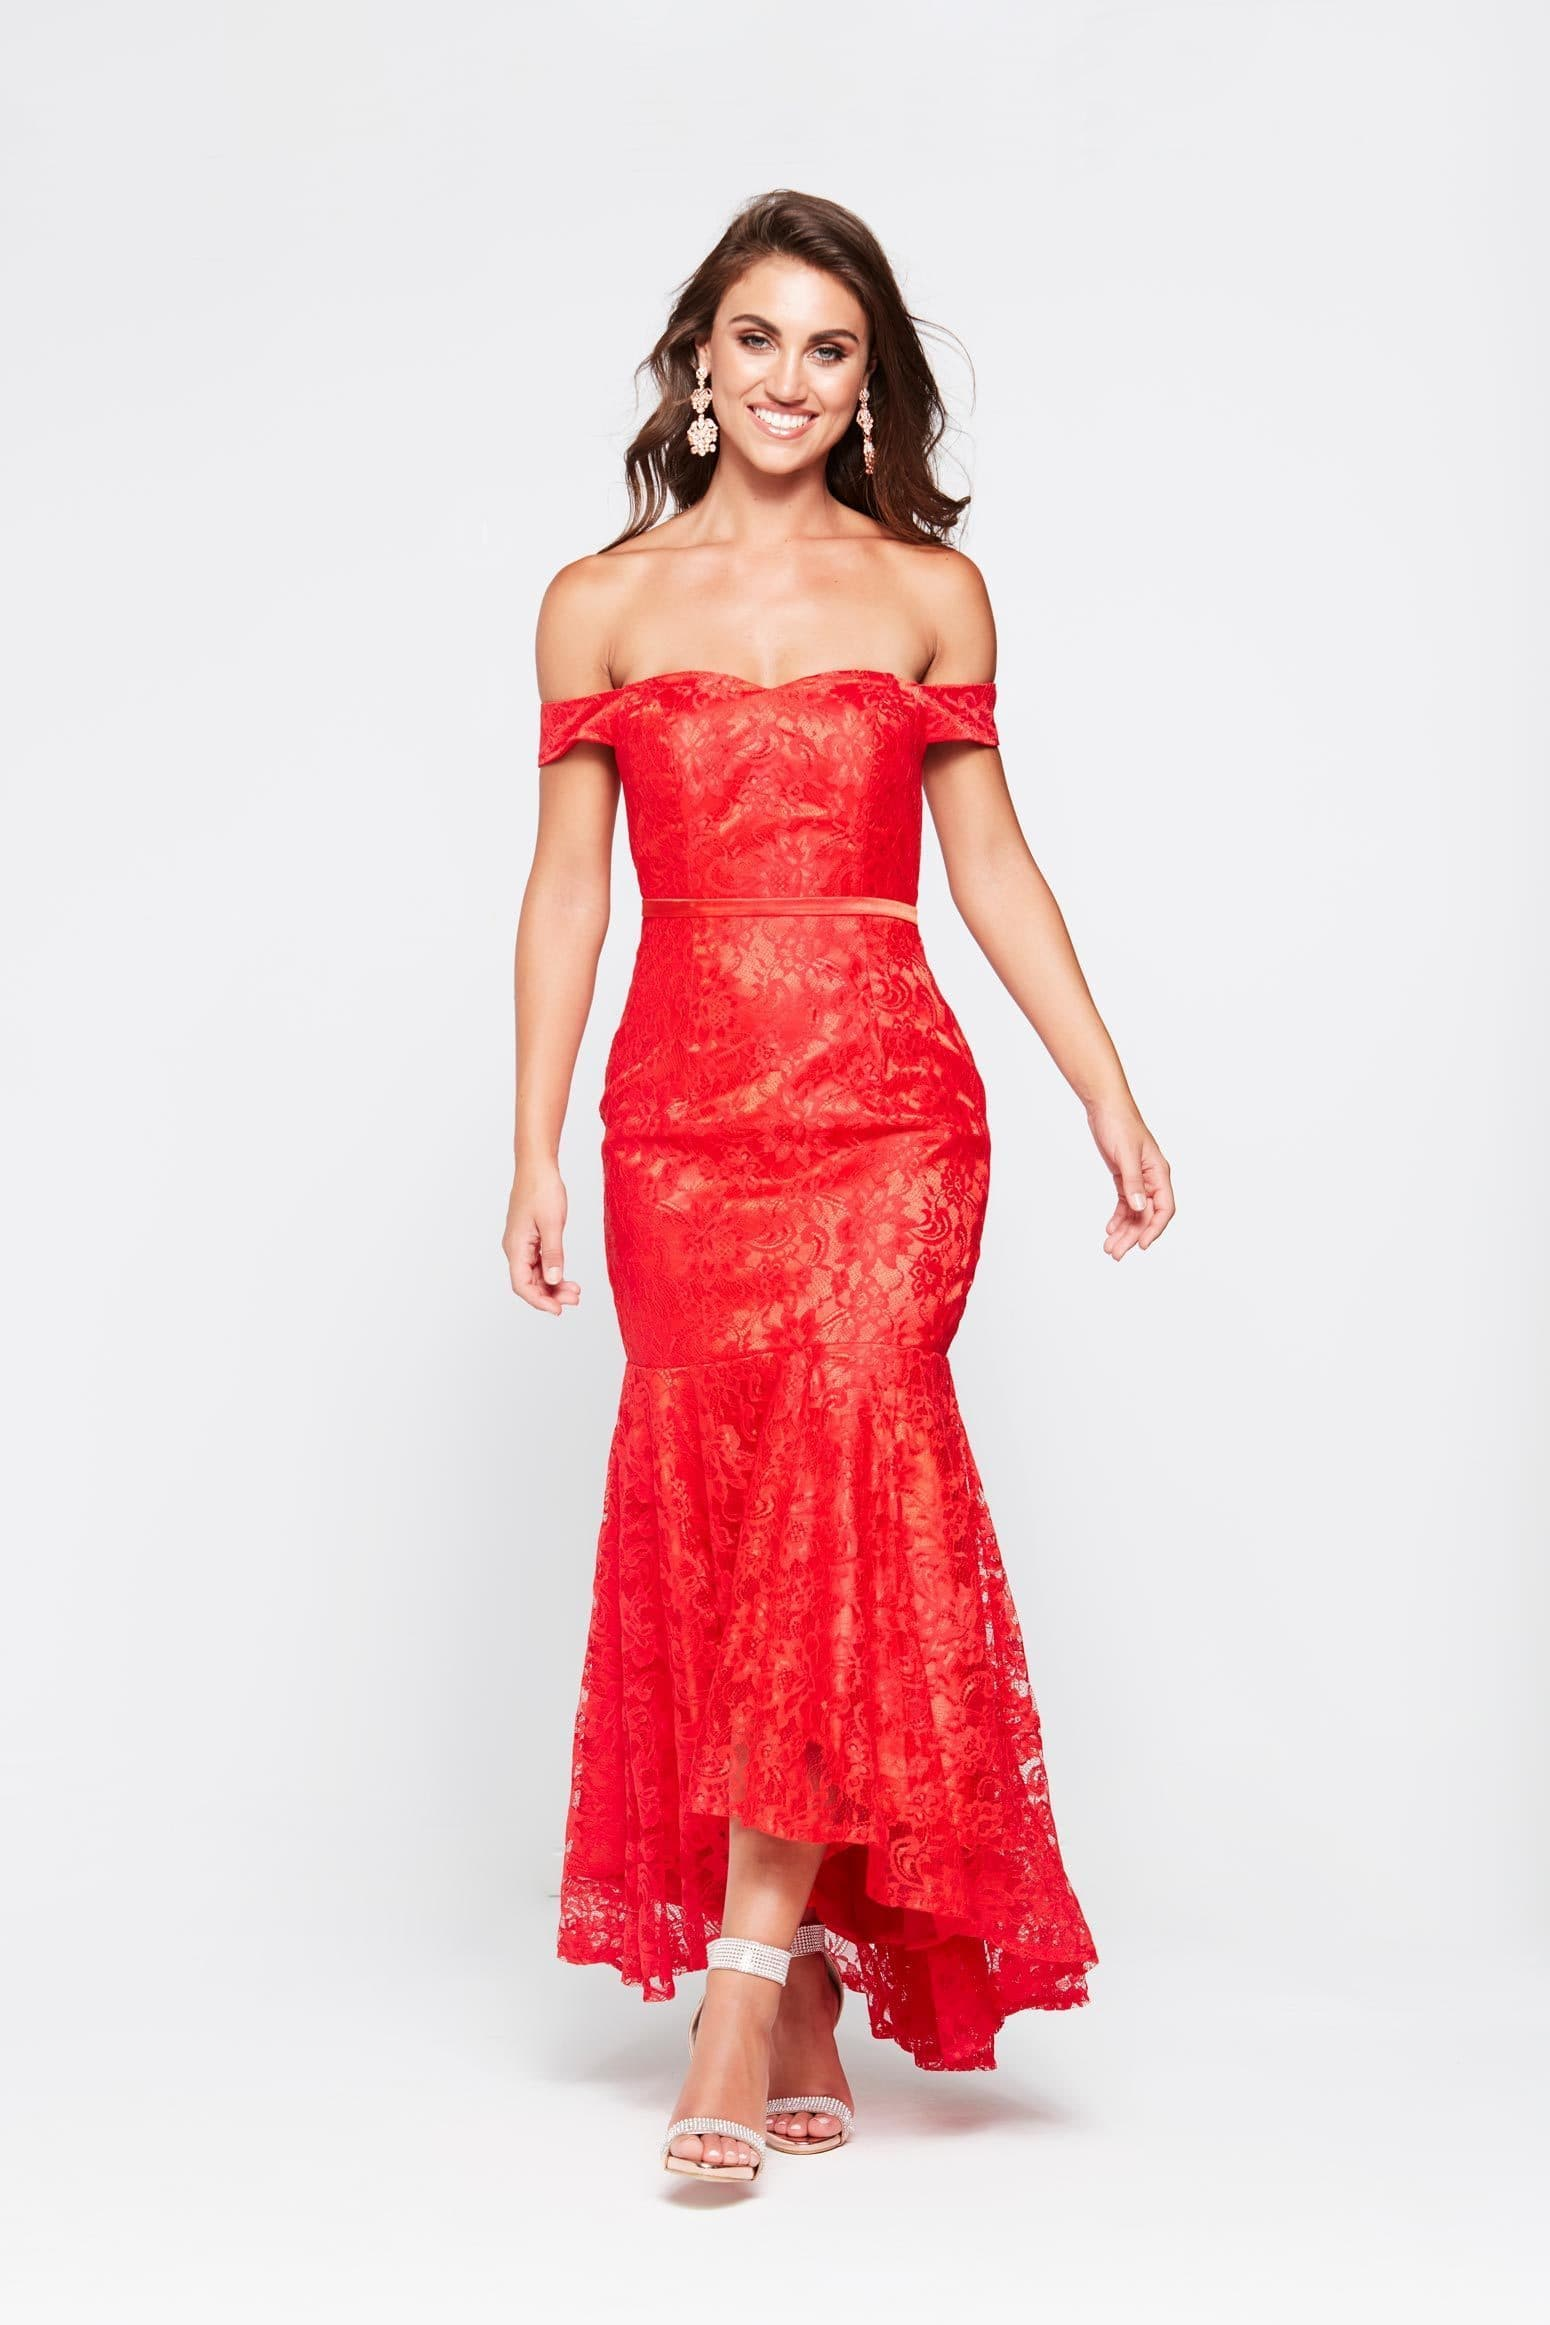 A&N Caroline - Red Off Shoulder Mermaid Dress with Lace Detail